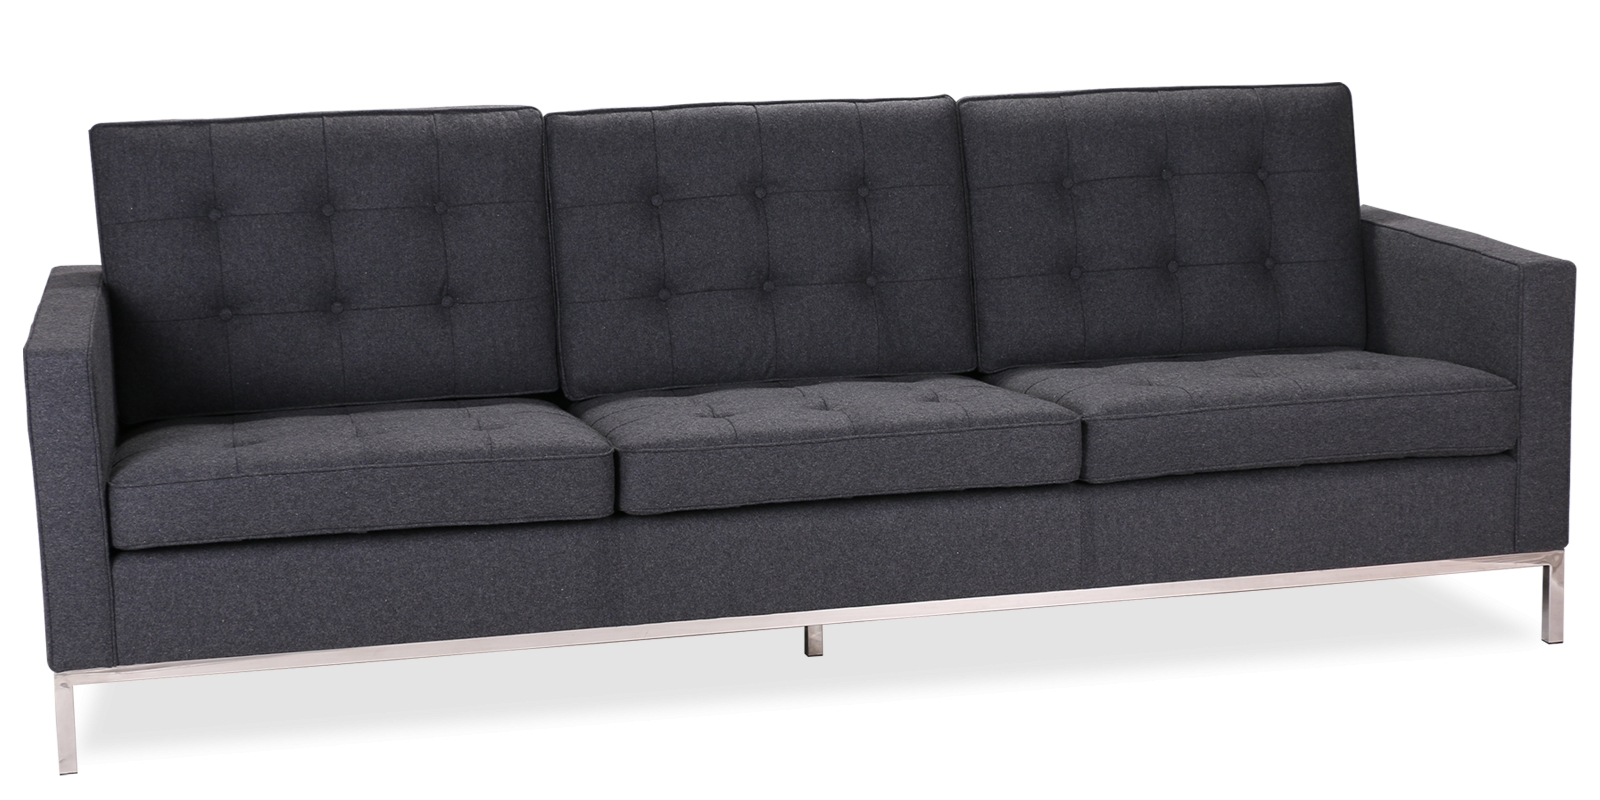 Knoll Style 3 Seater Sofa Inside Florence Knoll 3 Seater Sofas (View 17 of 20)